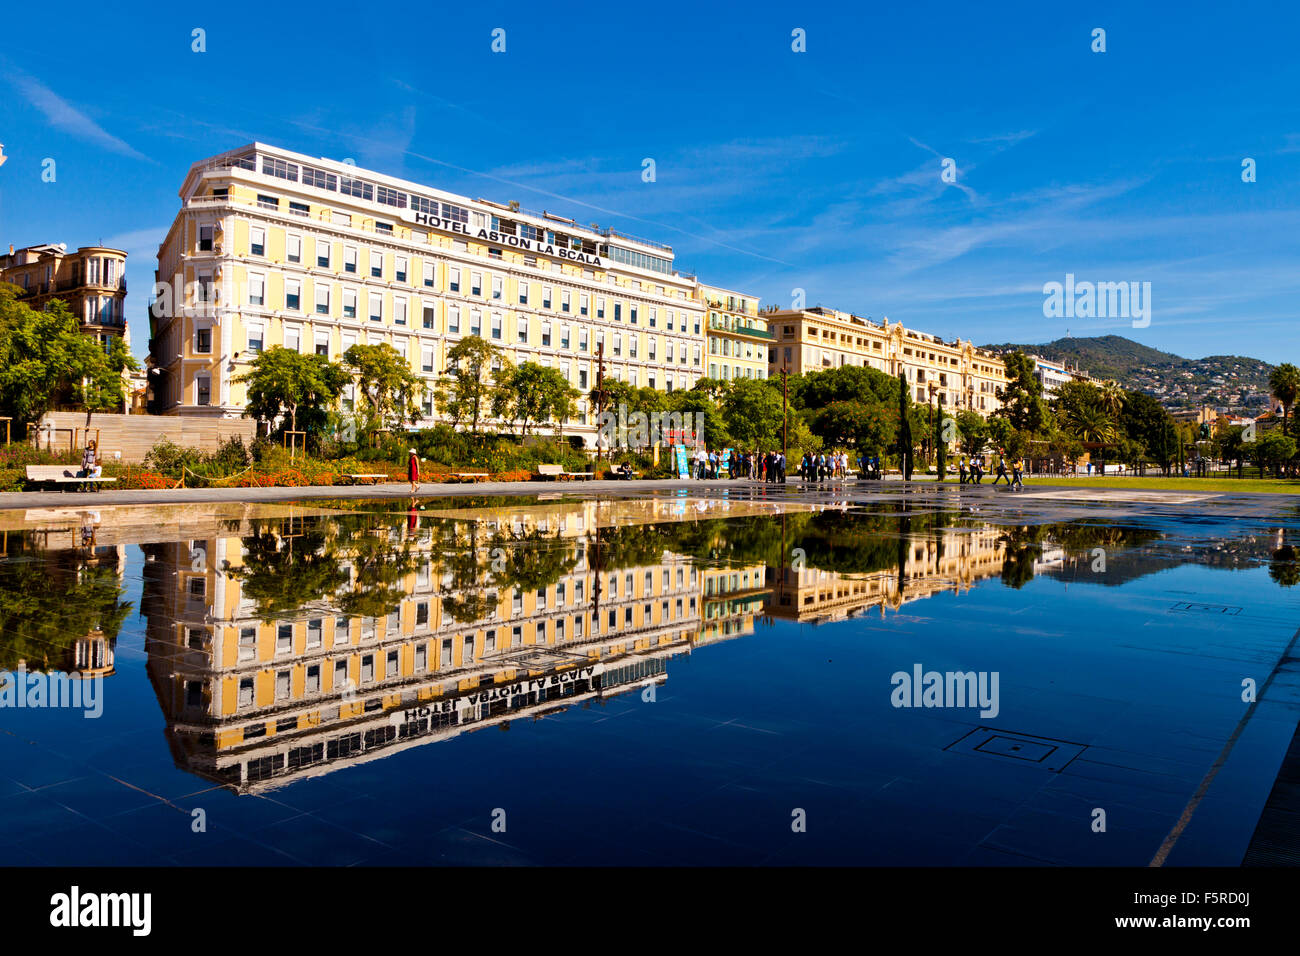 Hotel aston la scala reflected in the miroir d 39 eau nice for Miroir coiffure st augustin